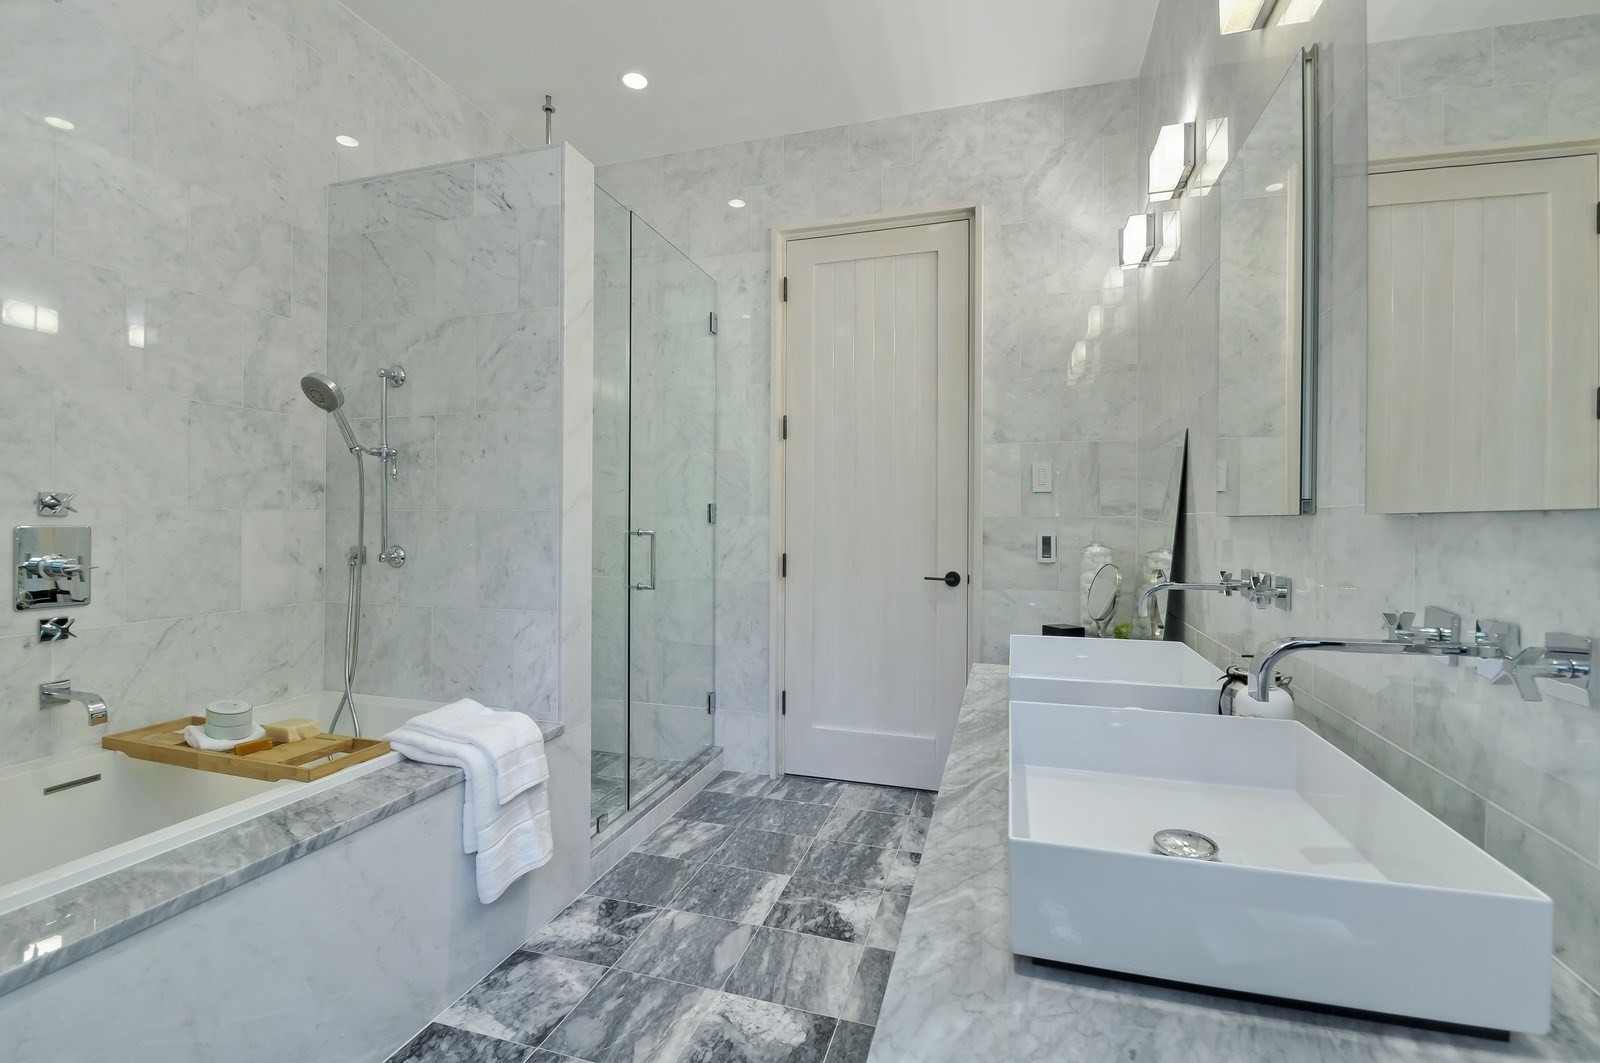 46East83rdStreet-bathroom